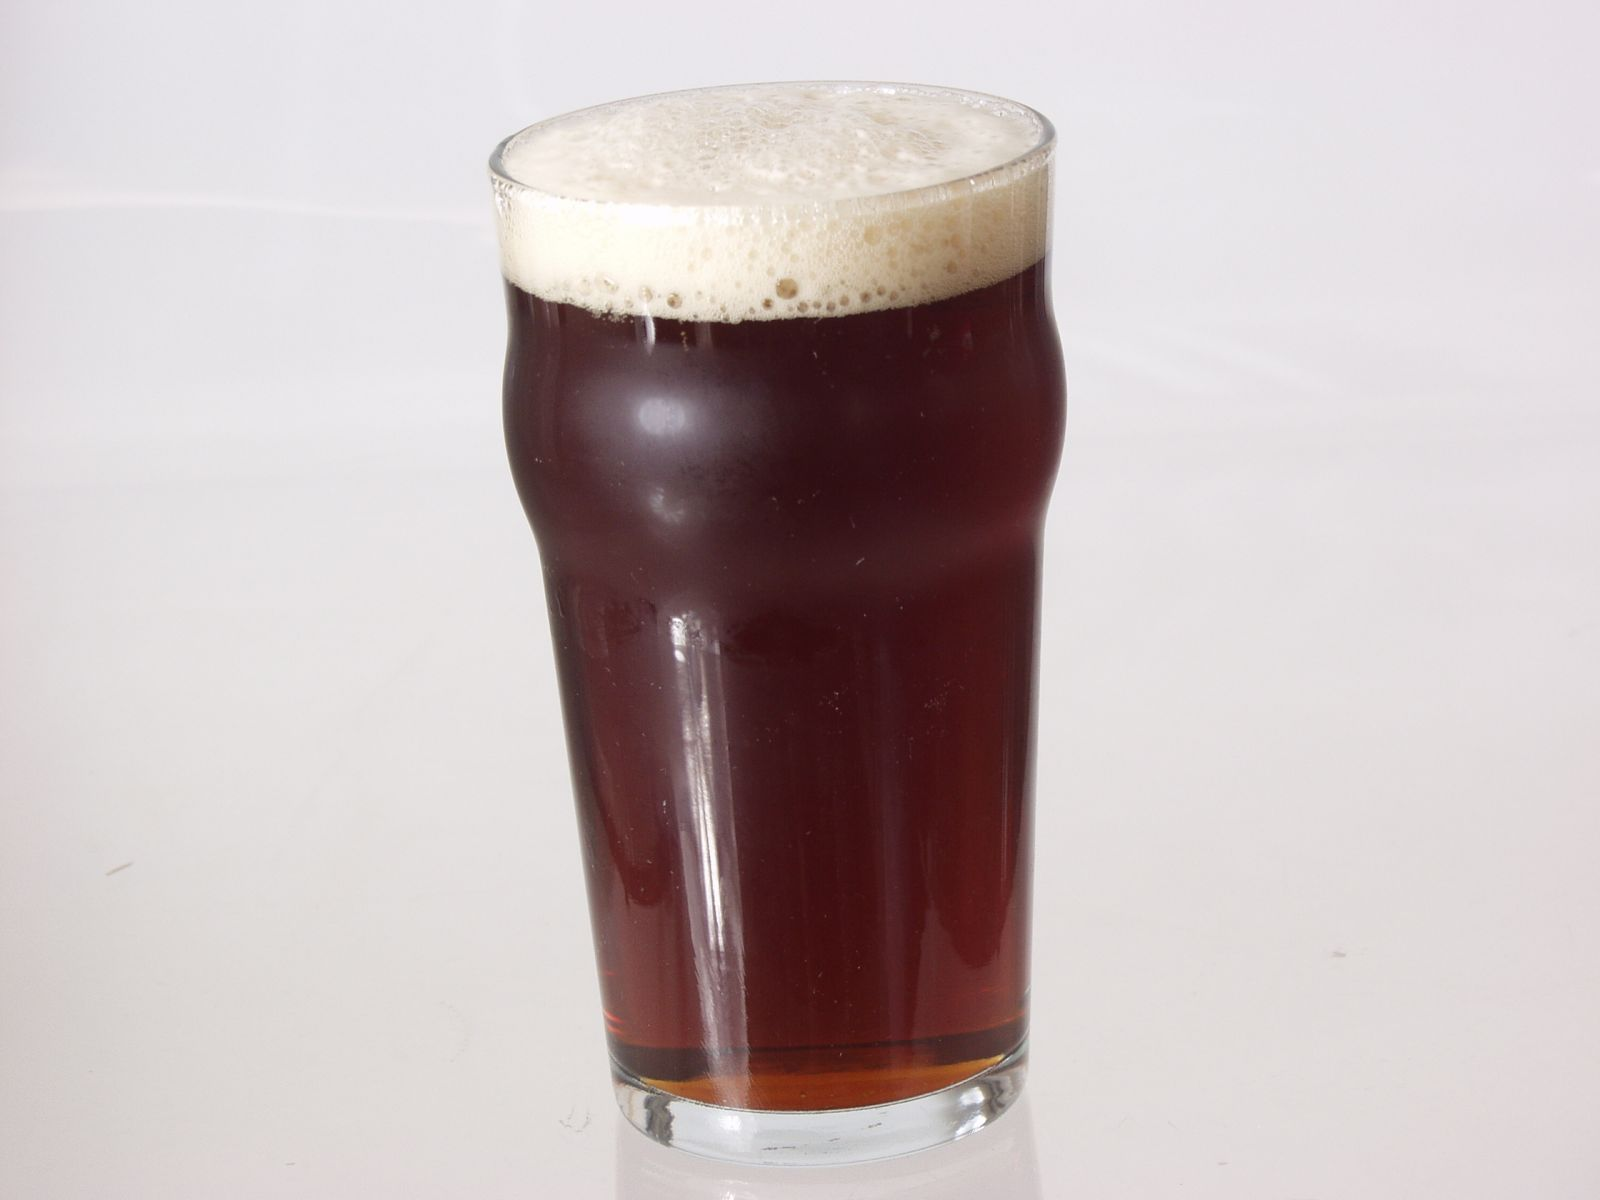 A fresh pour of a Bavarian Dunkel